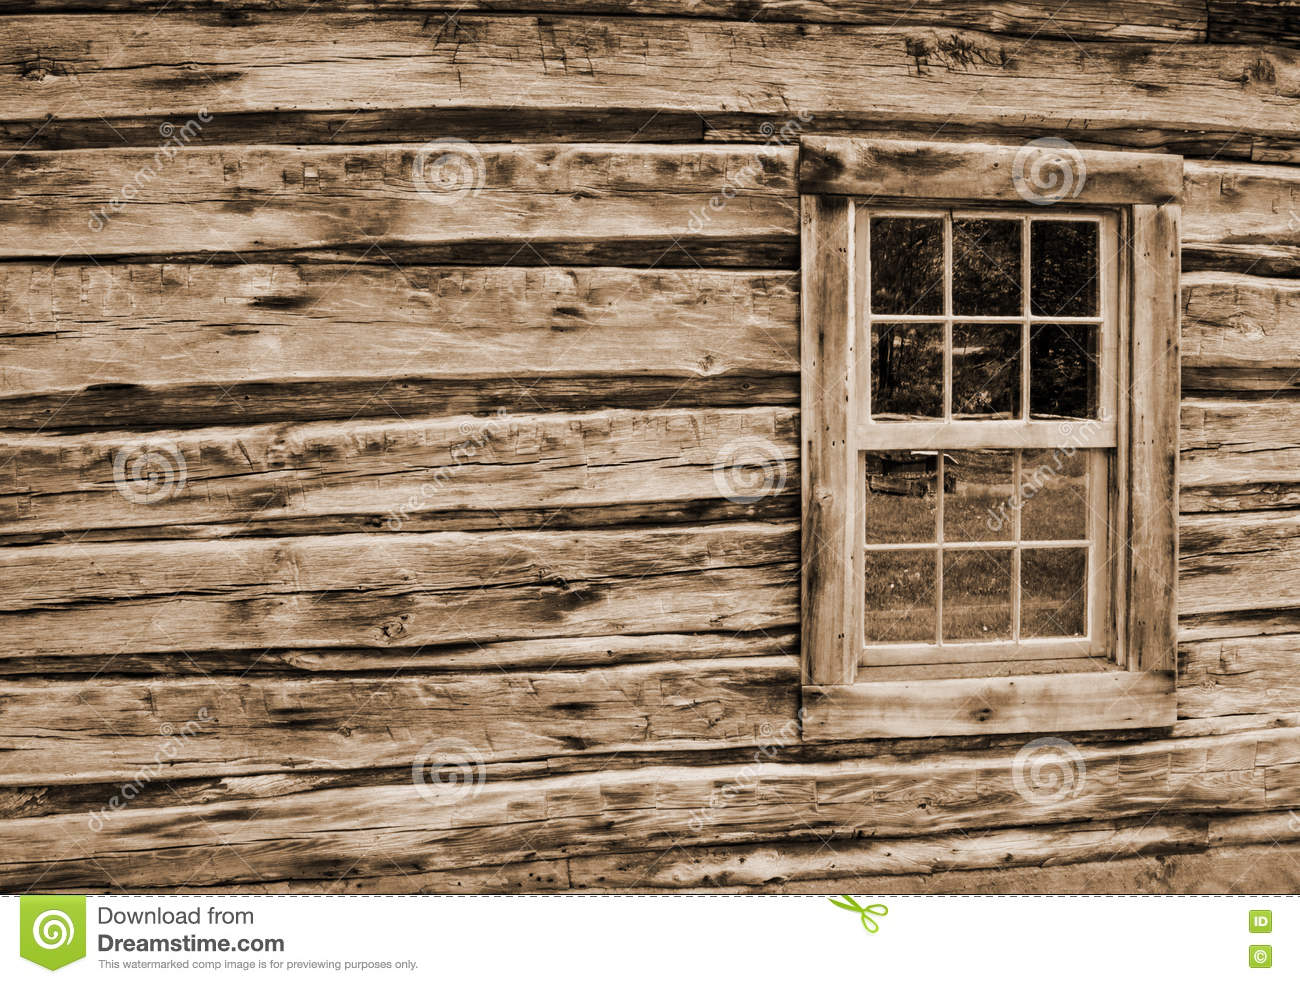 Superb img of The outside wall and window of an old log cabin located on the Blue  with #86AA21 color and 1300x984 pixels